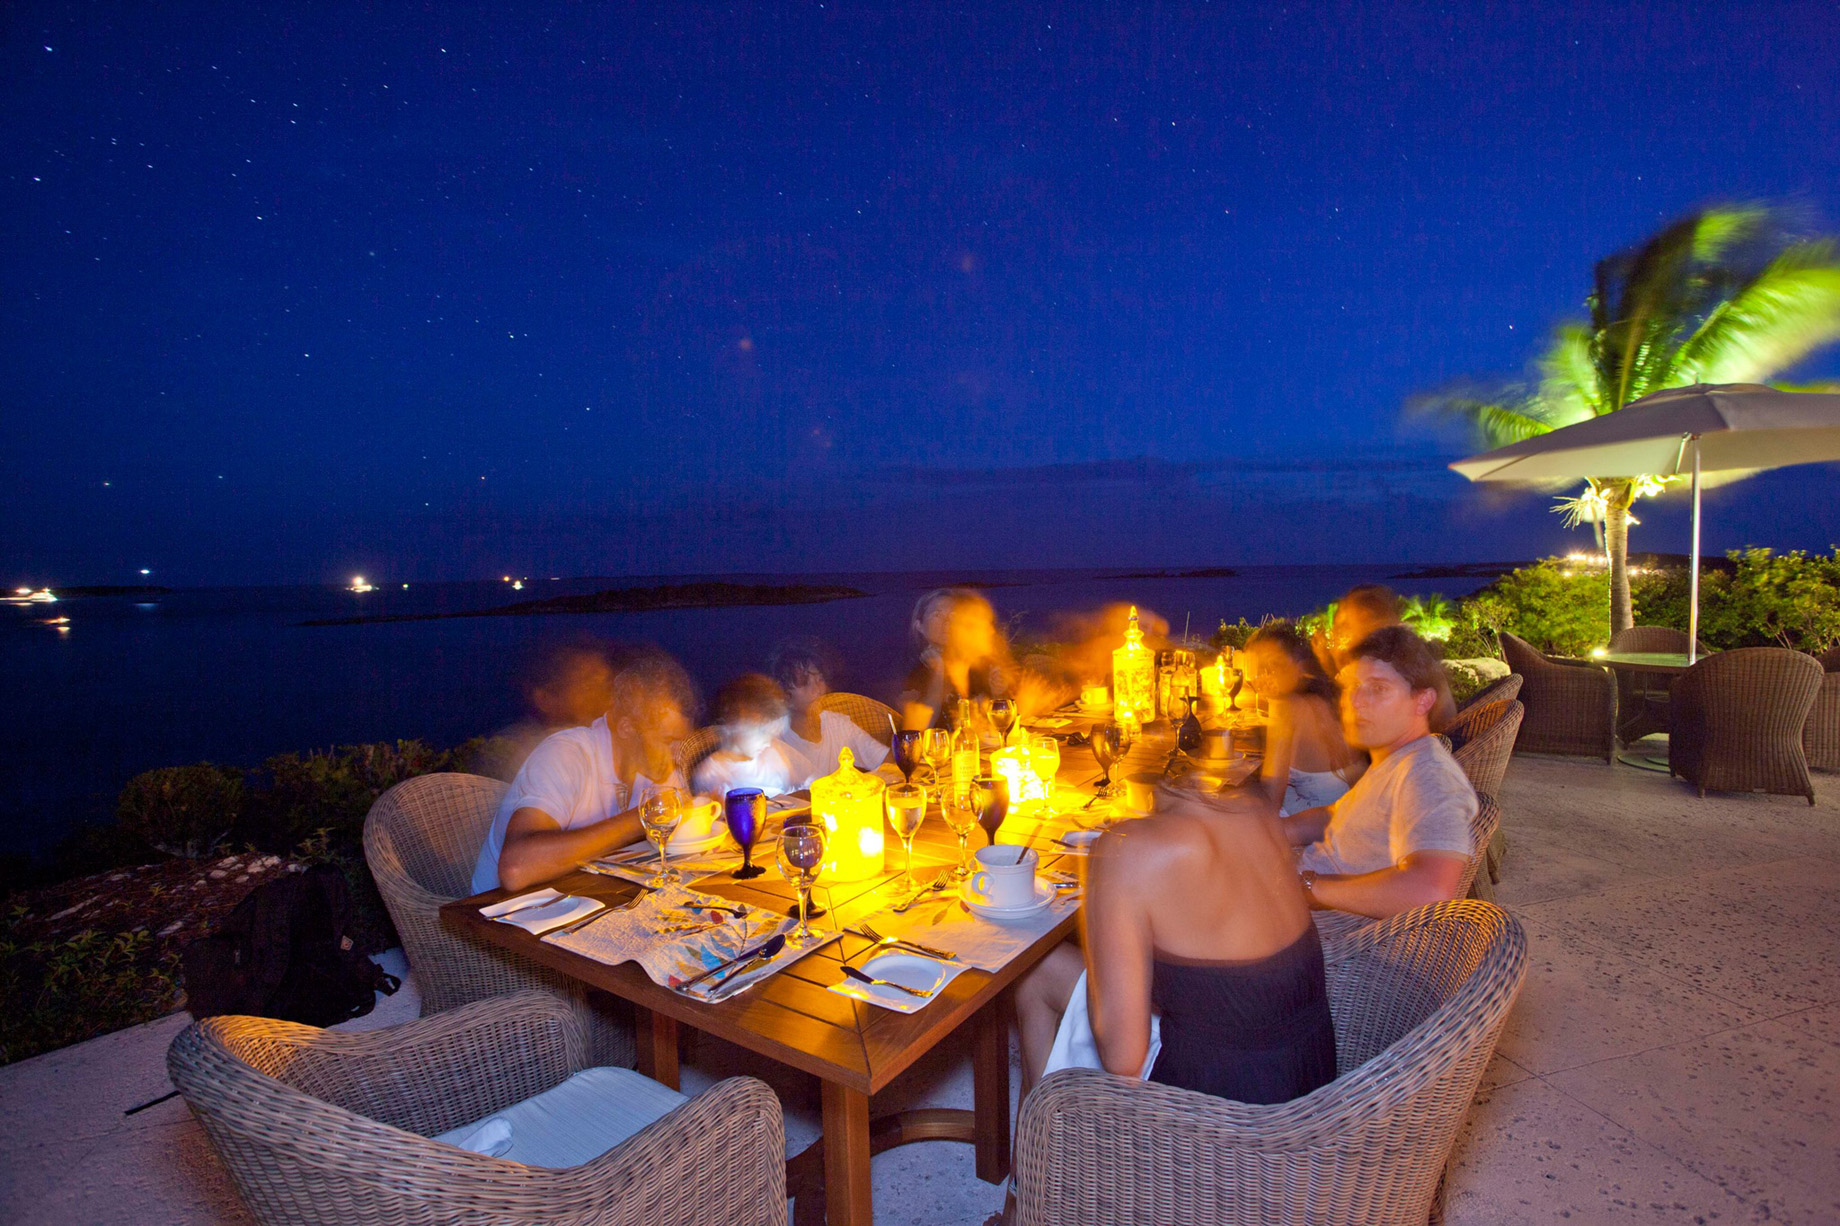 Dine at the Hill House Restaurant on Fowl Cay Island - Take A Luxury Getaway To The Bahamas